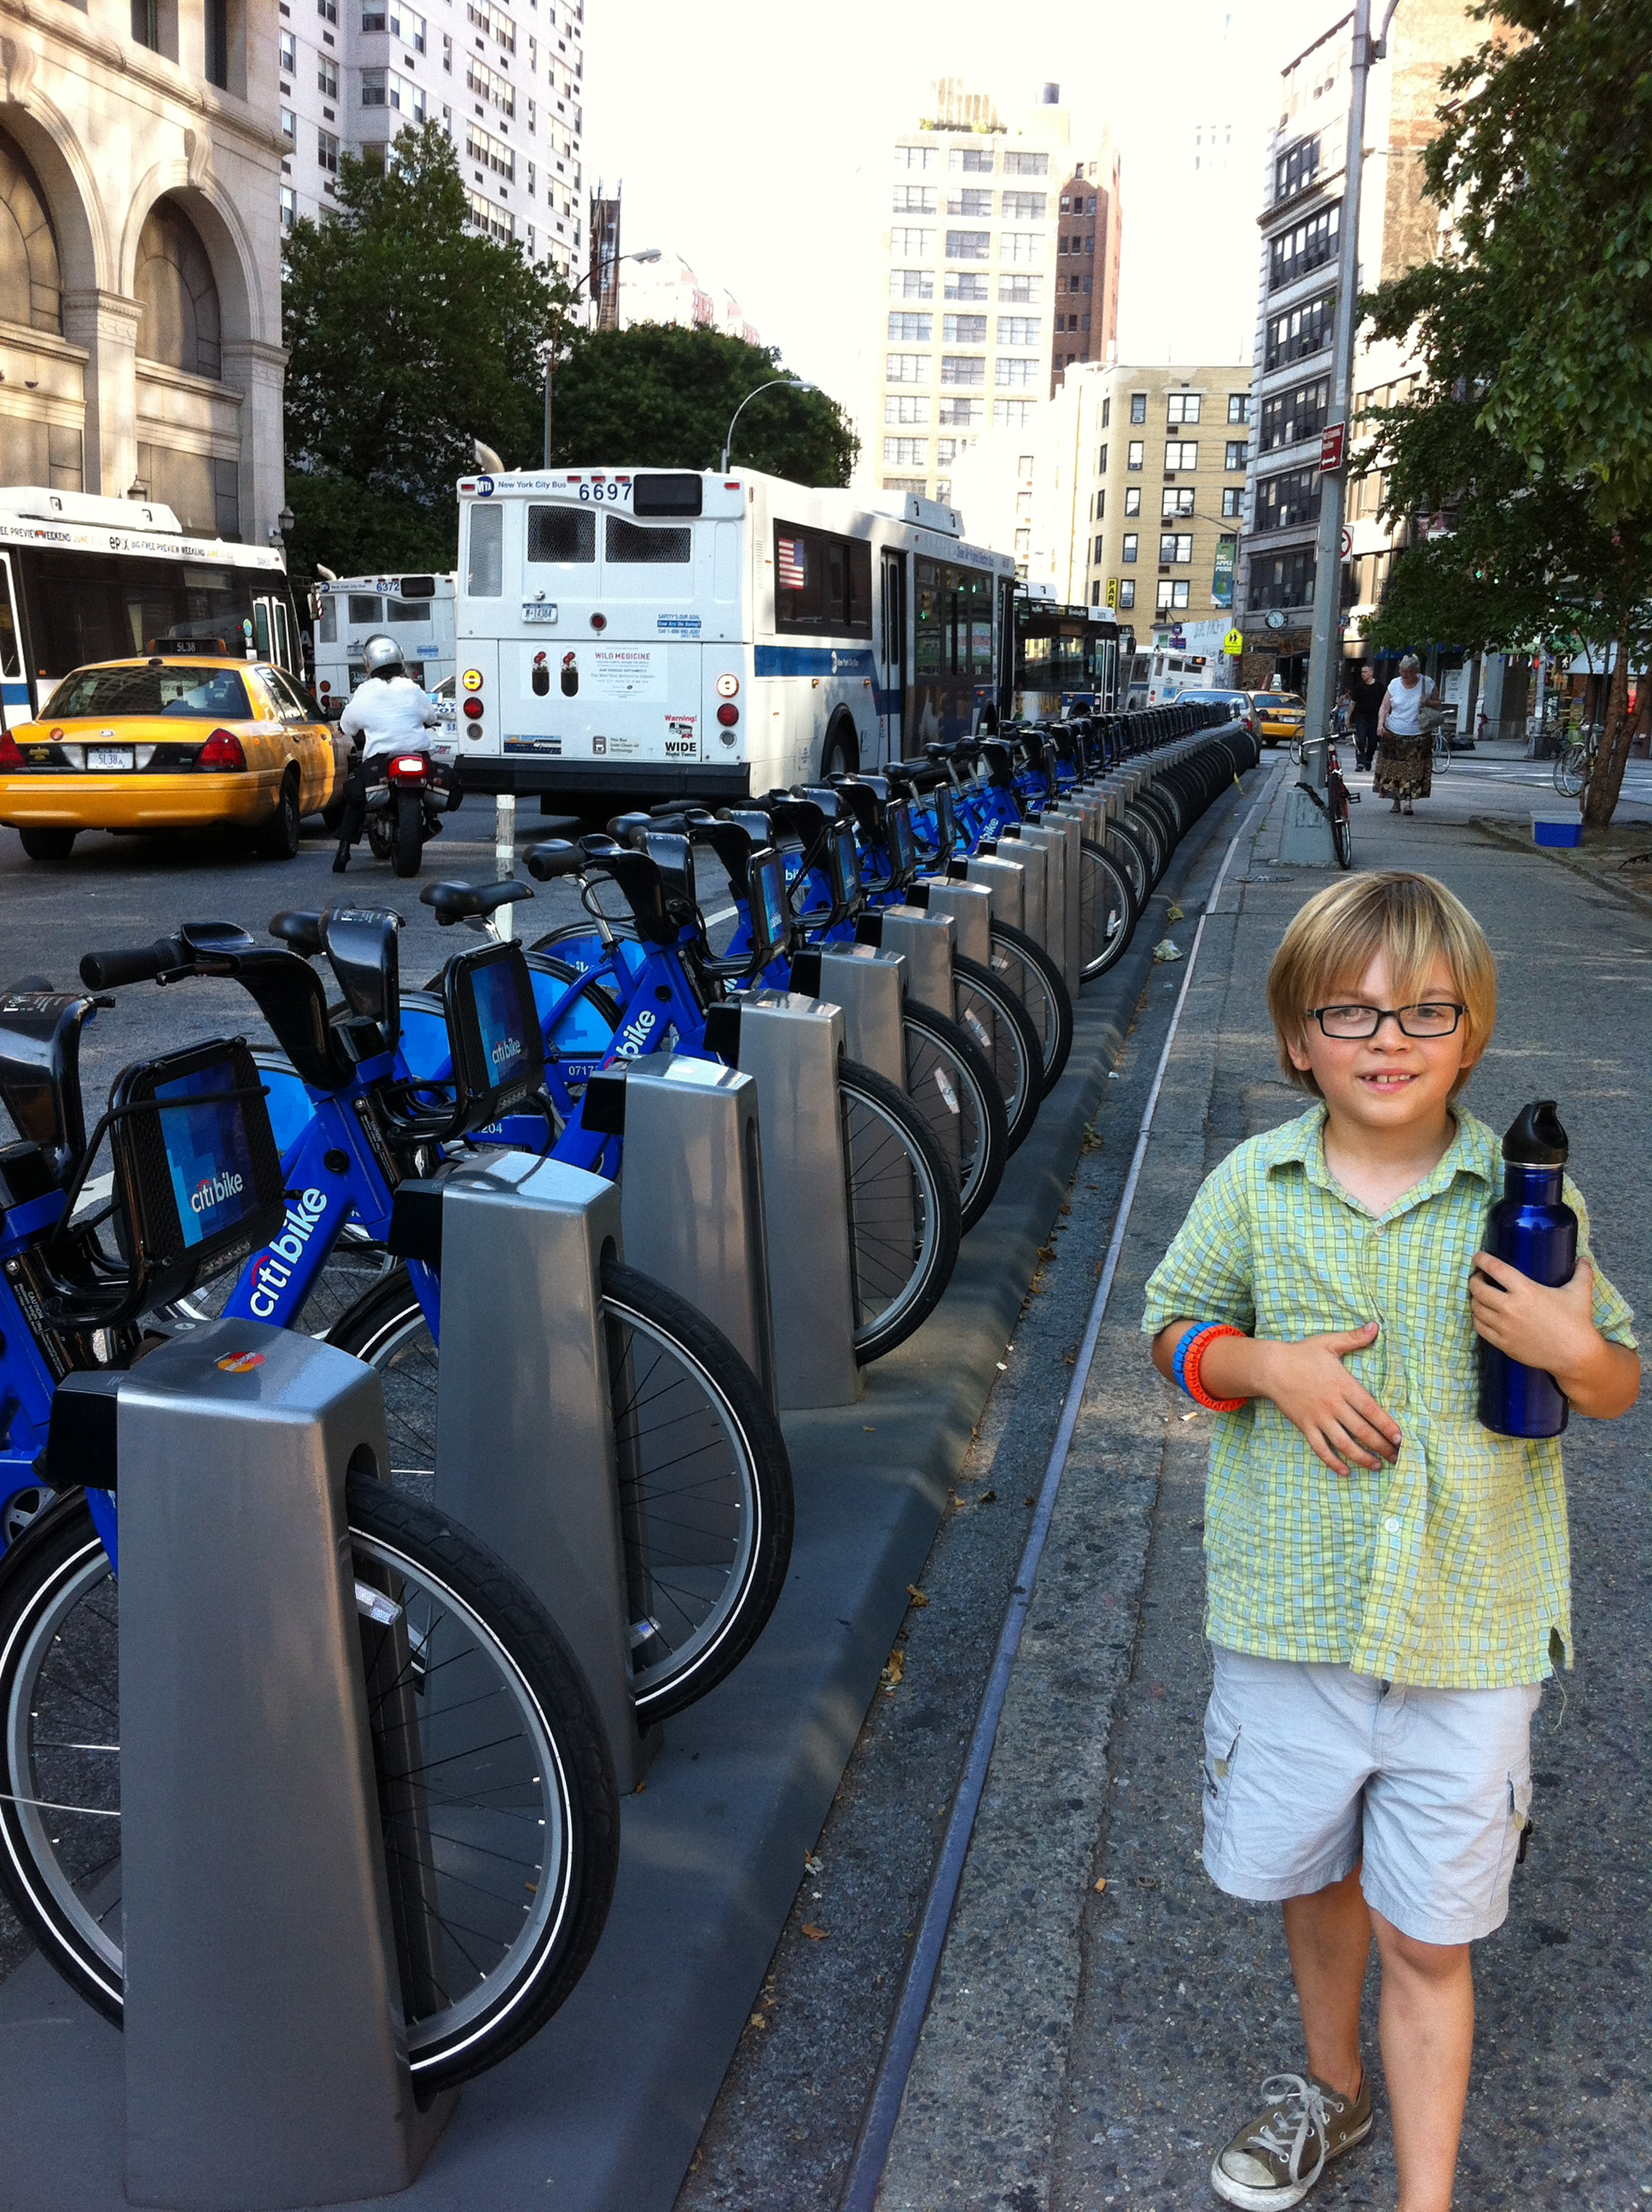 Elliot loves CitiBikeShare... but wonders when they'll come in kid sizes?